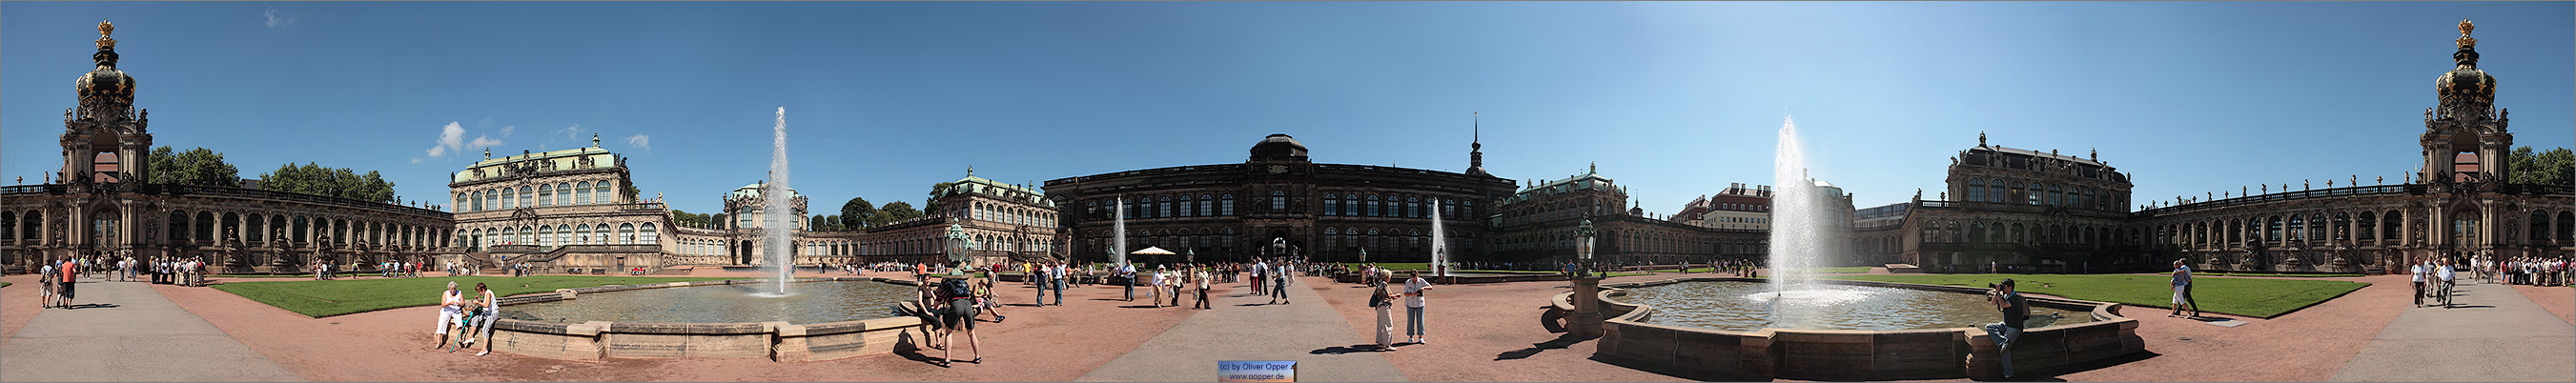 Panorama Dresden - Zwinger - p20 - (c) by Oliver Opper